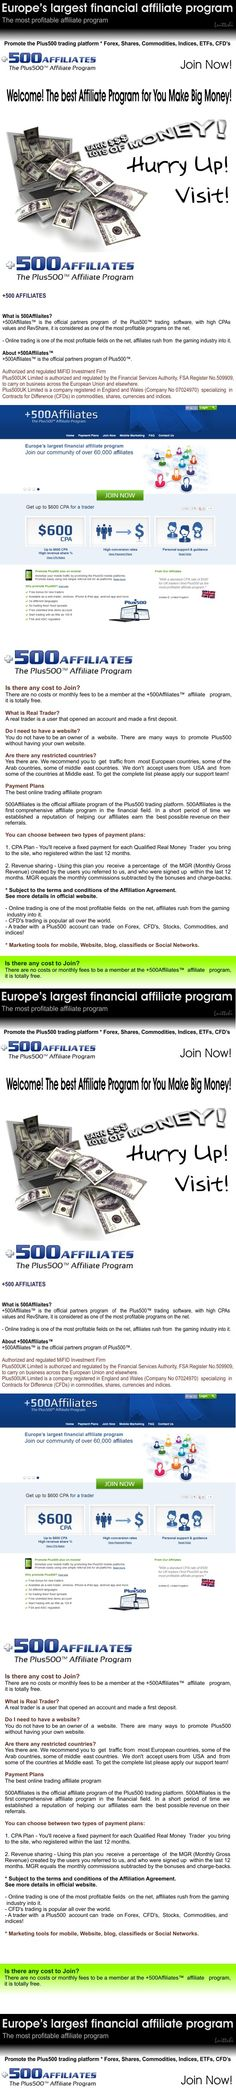 +500 AFFILIATES - JOIN NOW! > wooow3.weebly.com * You Earn a lot of money in security during much years! The best commissions! * There are no costs or monthly fees to be a member at the +500Affiliates™ affiliate program, it is totally free. * Marketing tools for mobile, Website, blog, classifieds or Social Networks. * The best online trading affiliate program. Visit! MORE INFORMATIONS > wooow3.weebly.com